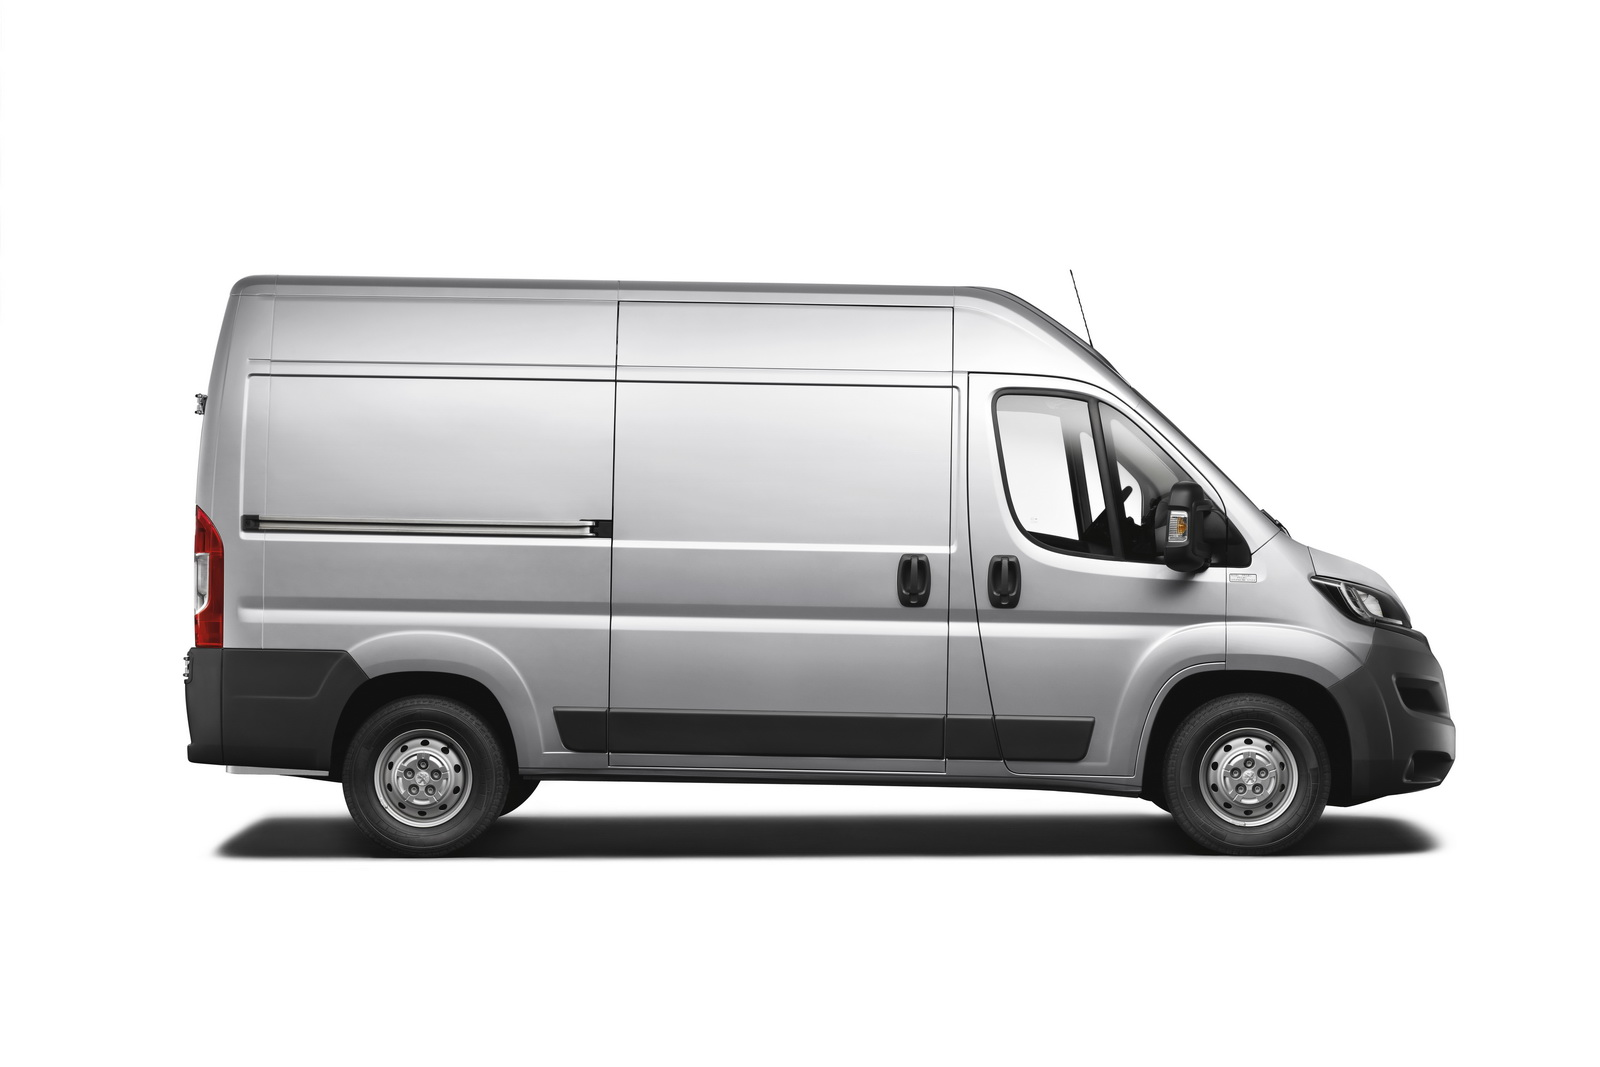 peugeot boxer van gets nip and tuck job autoevolution. Black Bedroom Furniture Sets. Home Design Ideas